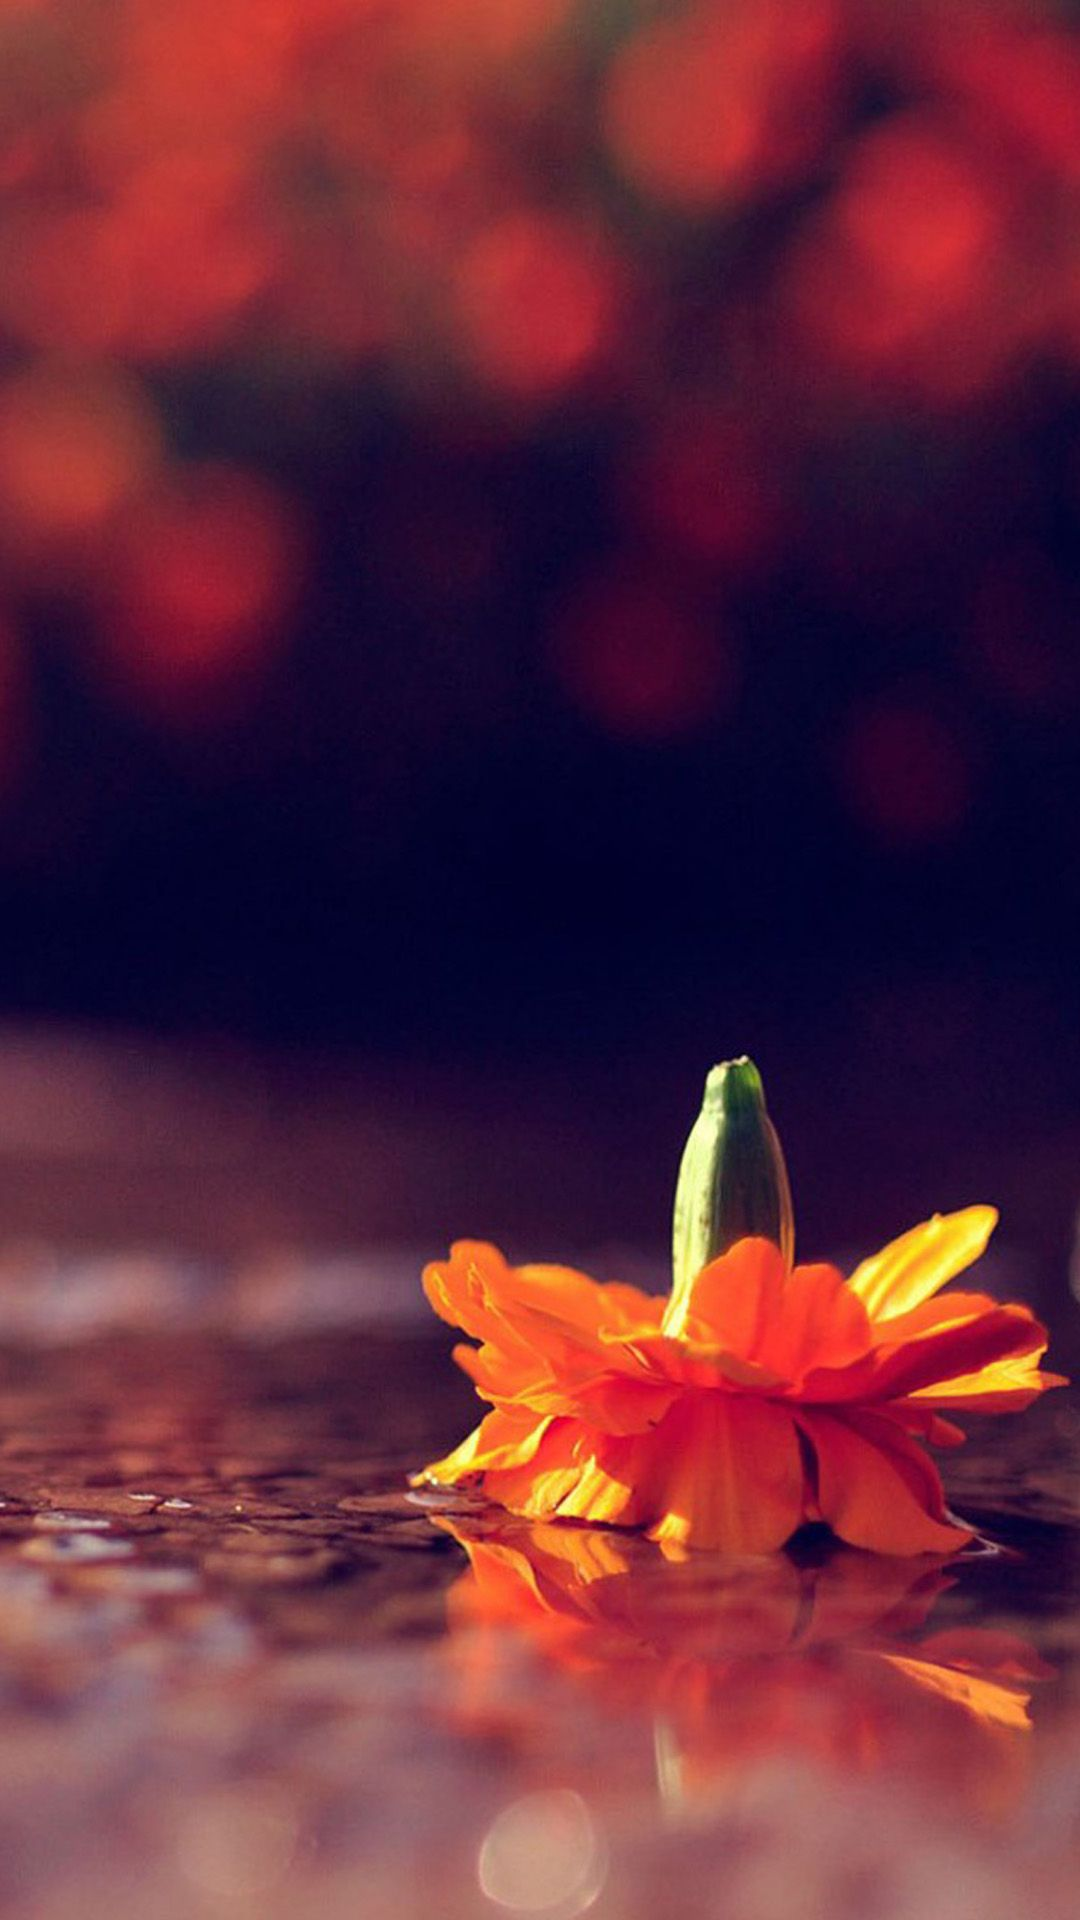 Handstand flower bokeh iphone 6 wallpaper iphone 6 walls - Iphone 6 flower wallpaper ...